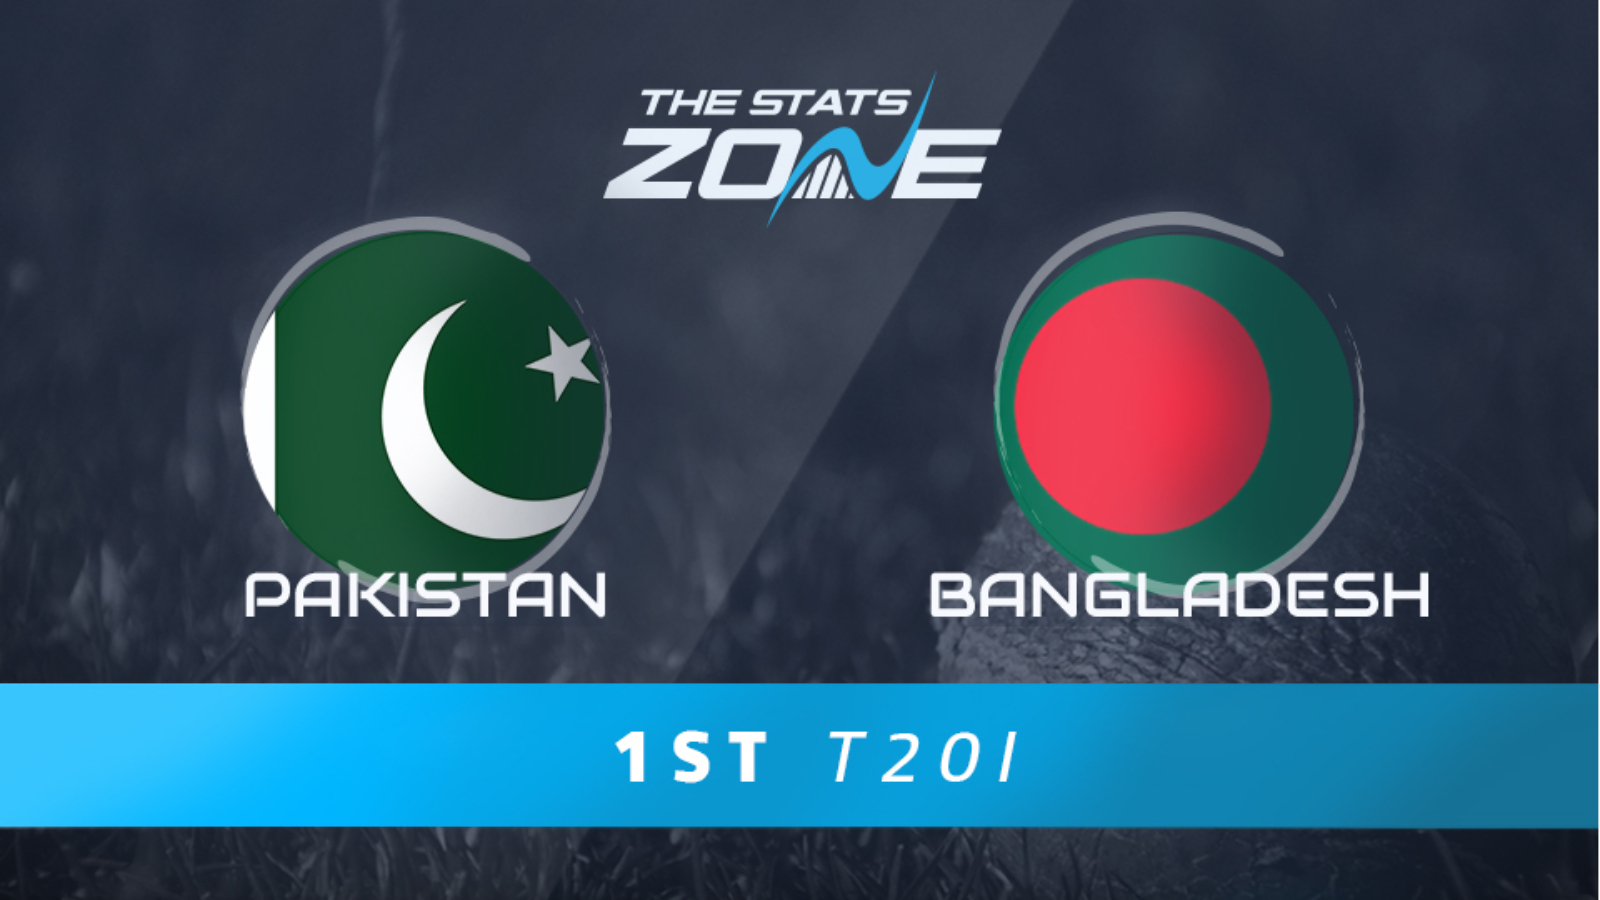 Bangladesh v Pakistan 1st T20I in Numbers